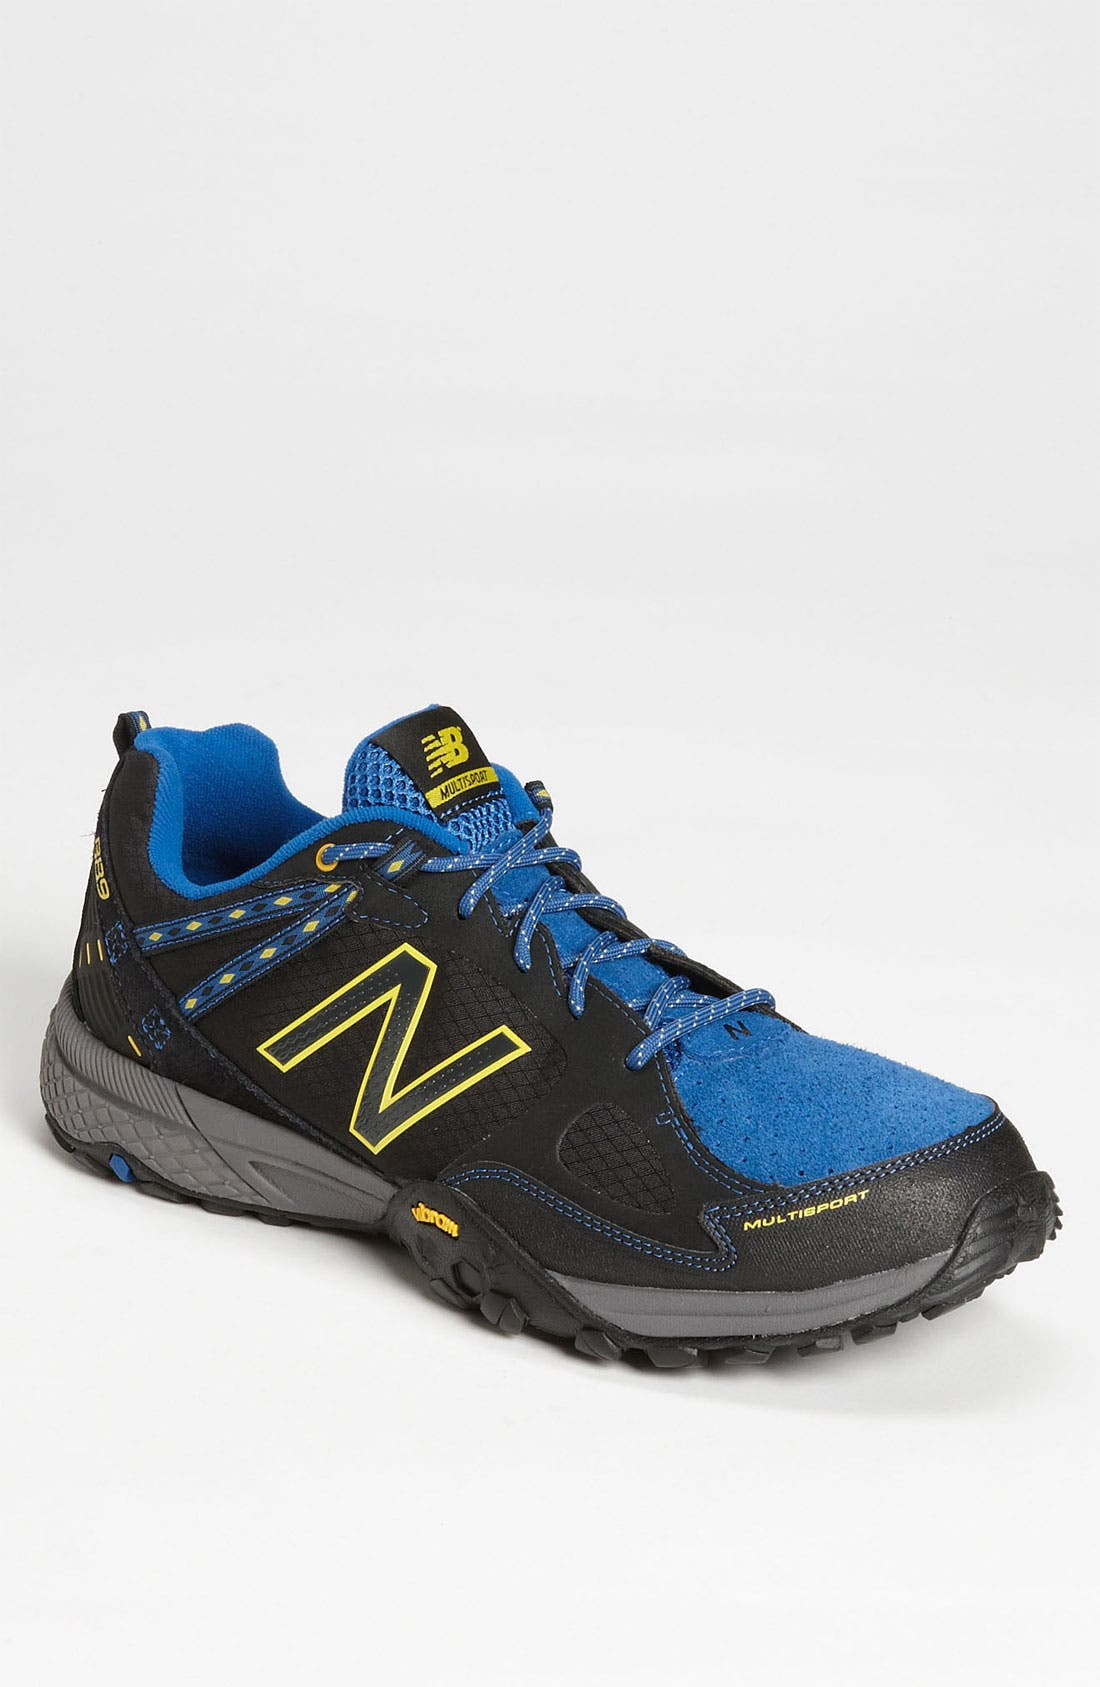 Alternate Image 1 Selected - New Balance '889' Trail Running Shoe (Men)